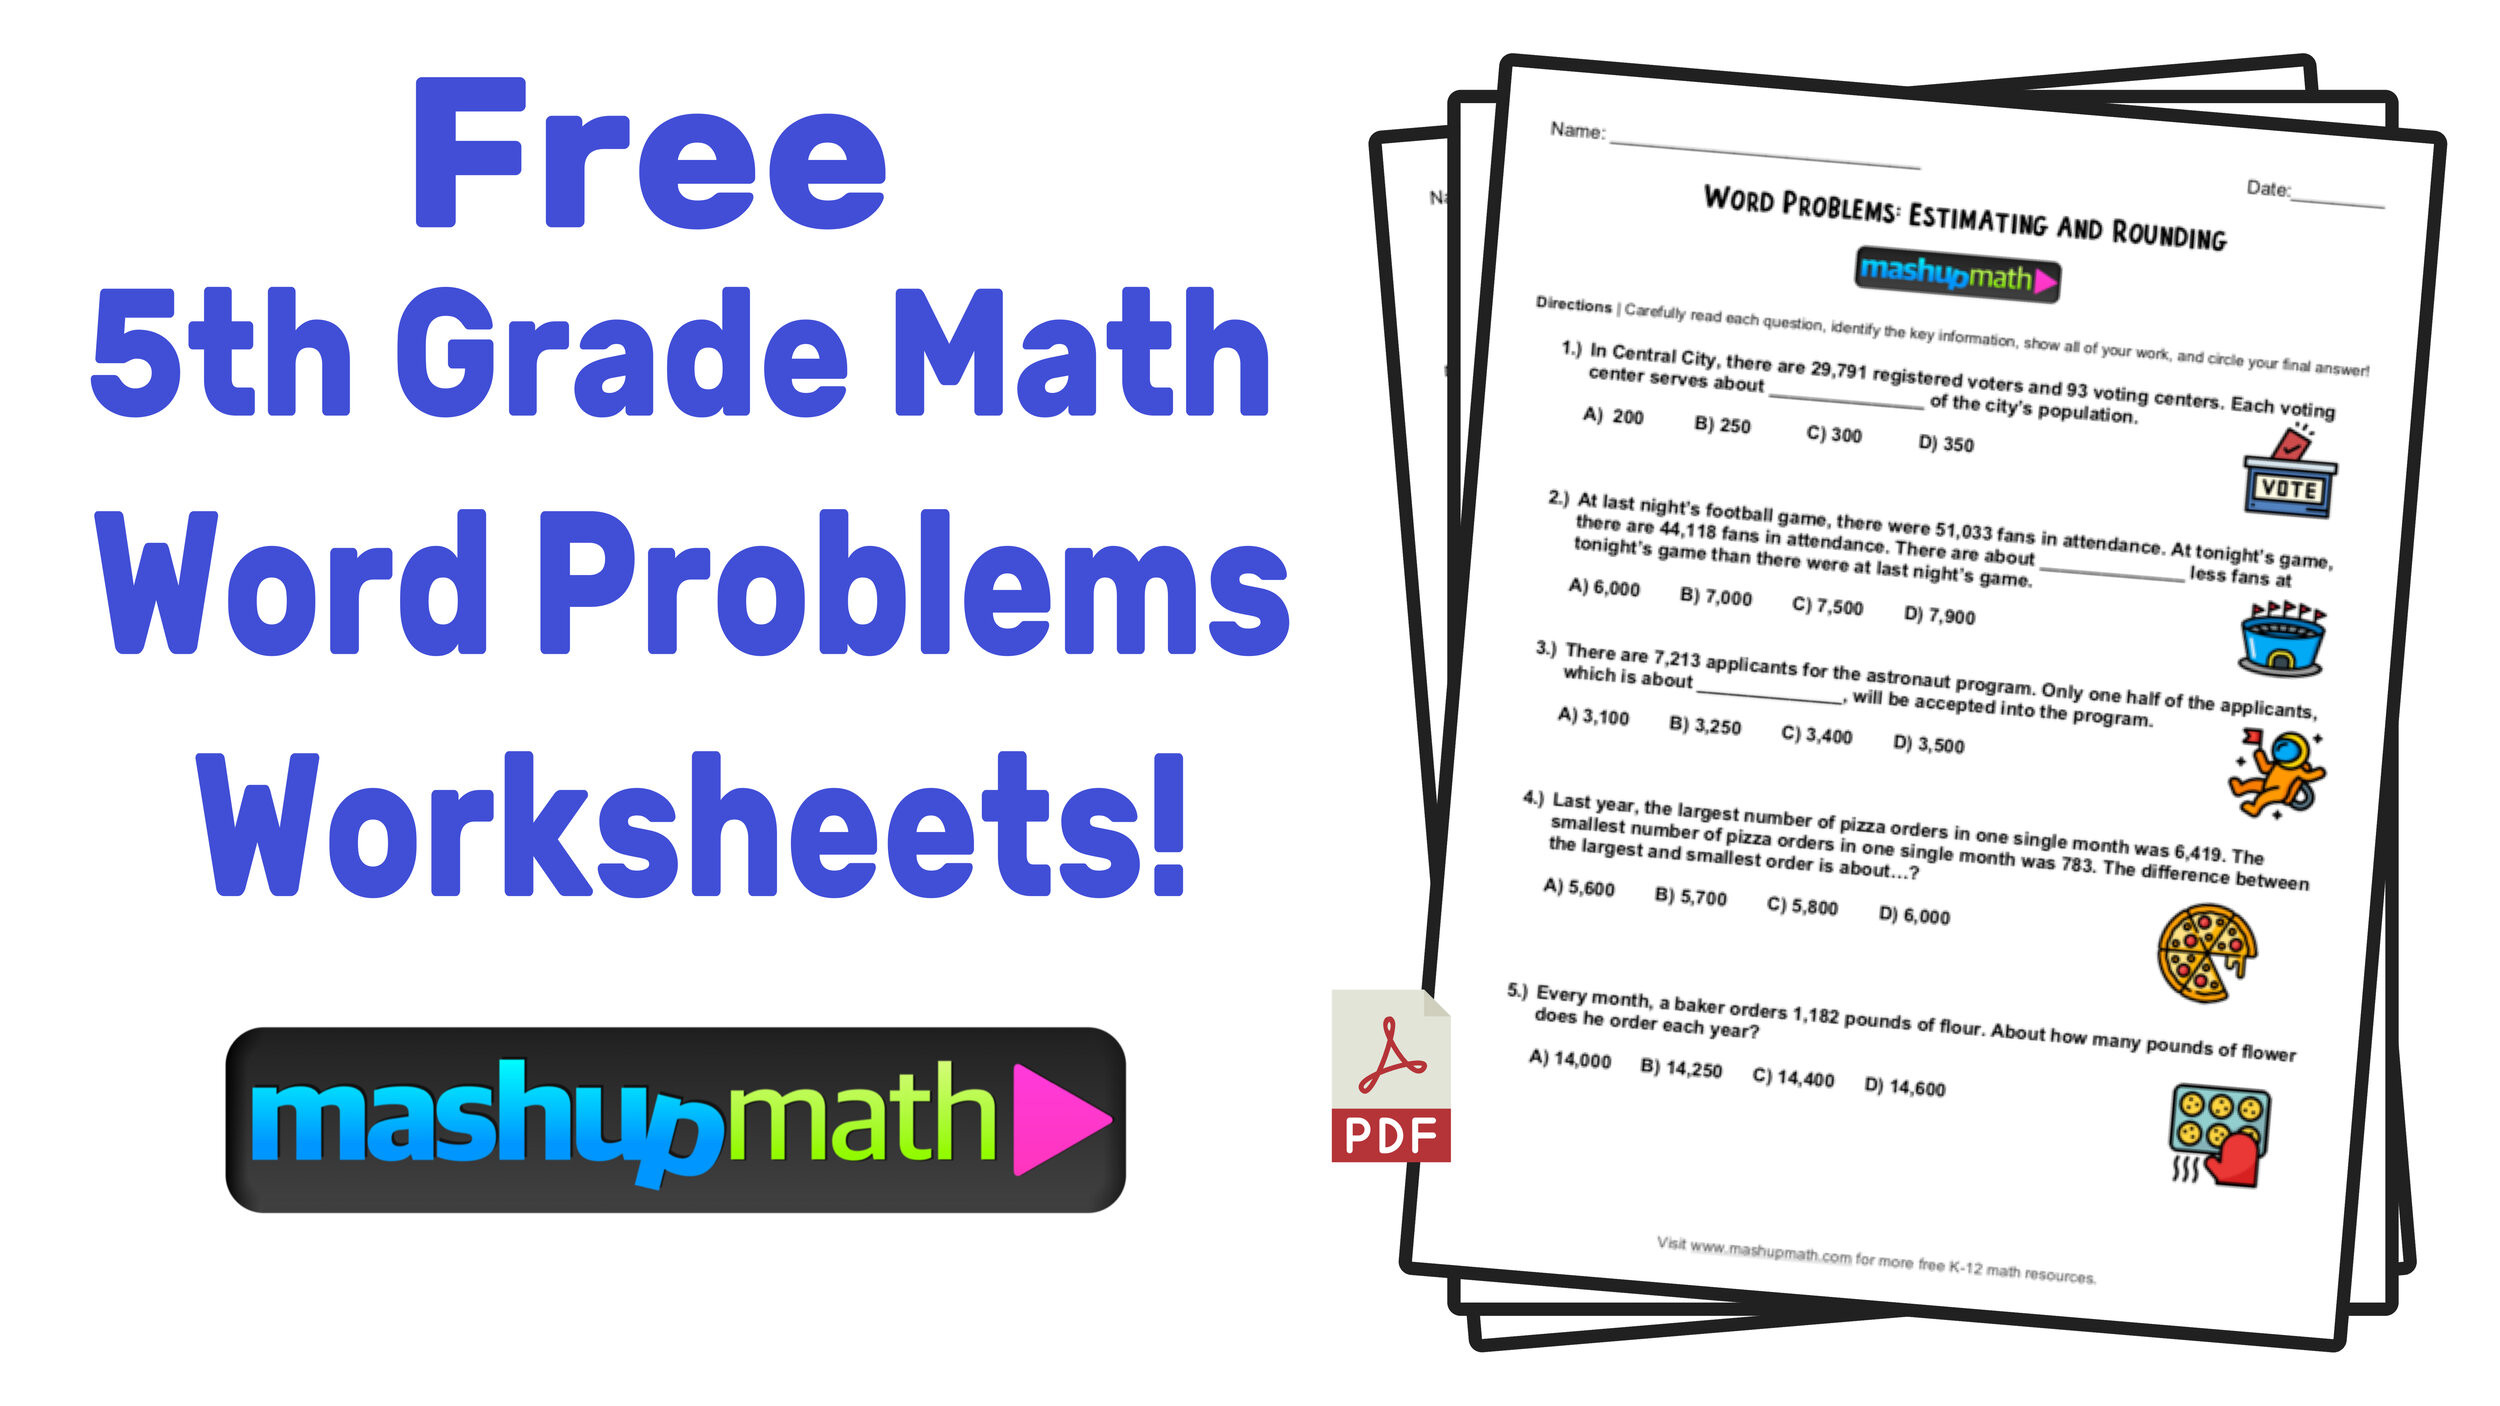 Fifth Grade Measurement Worksheets 5th Grade Math Word Problems Free Worksheets with Answers